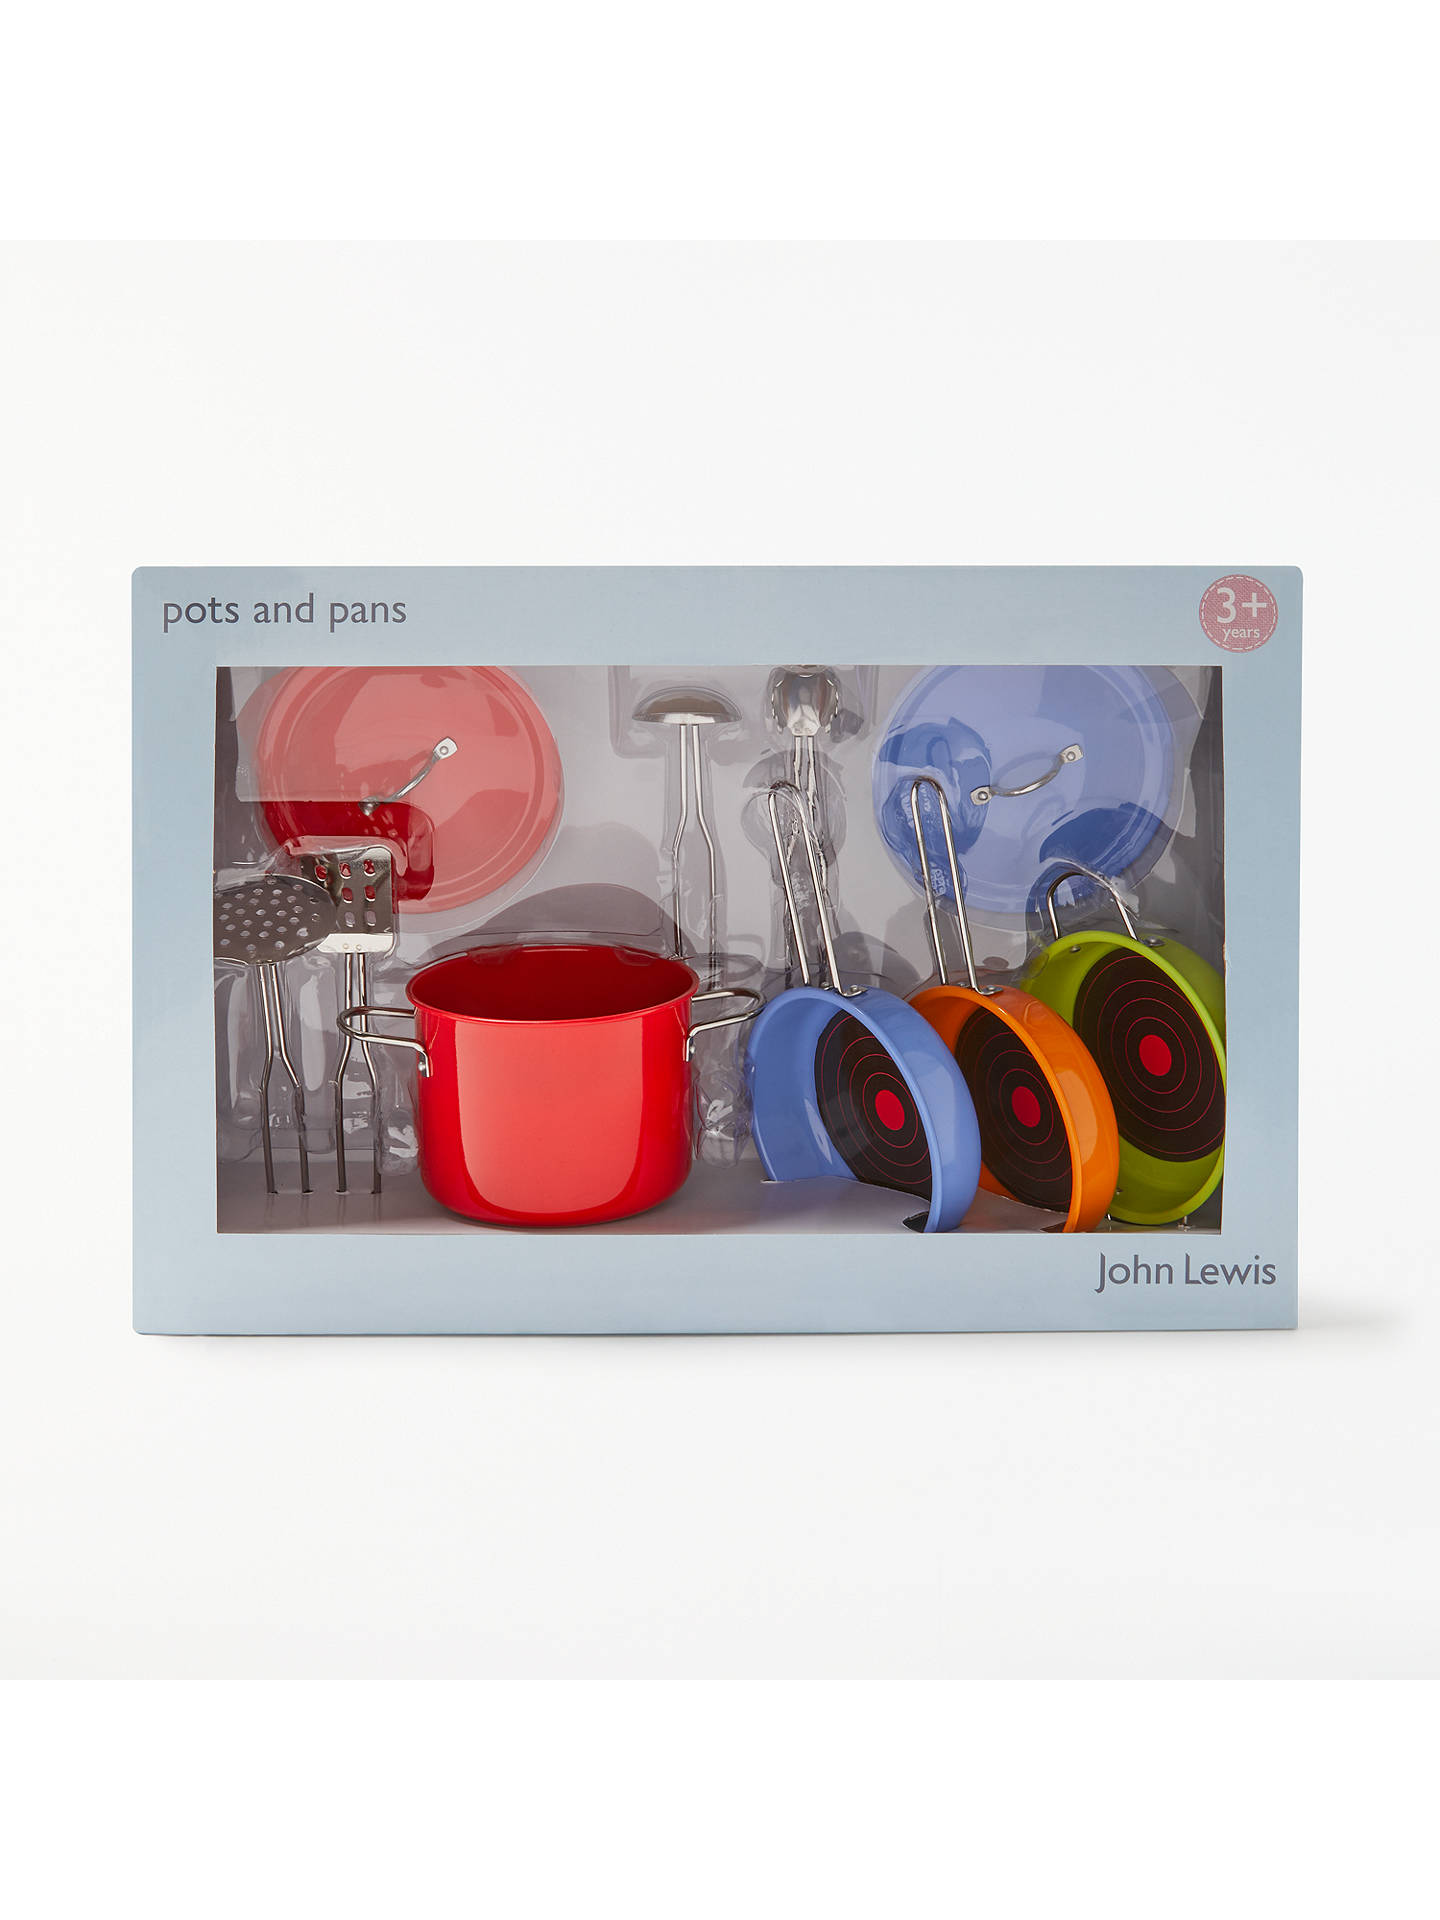 BuyJohn Lewis Toy Pots And Pans Set Online at johnlewis.com